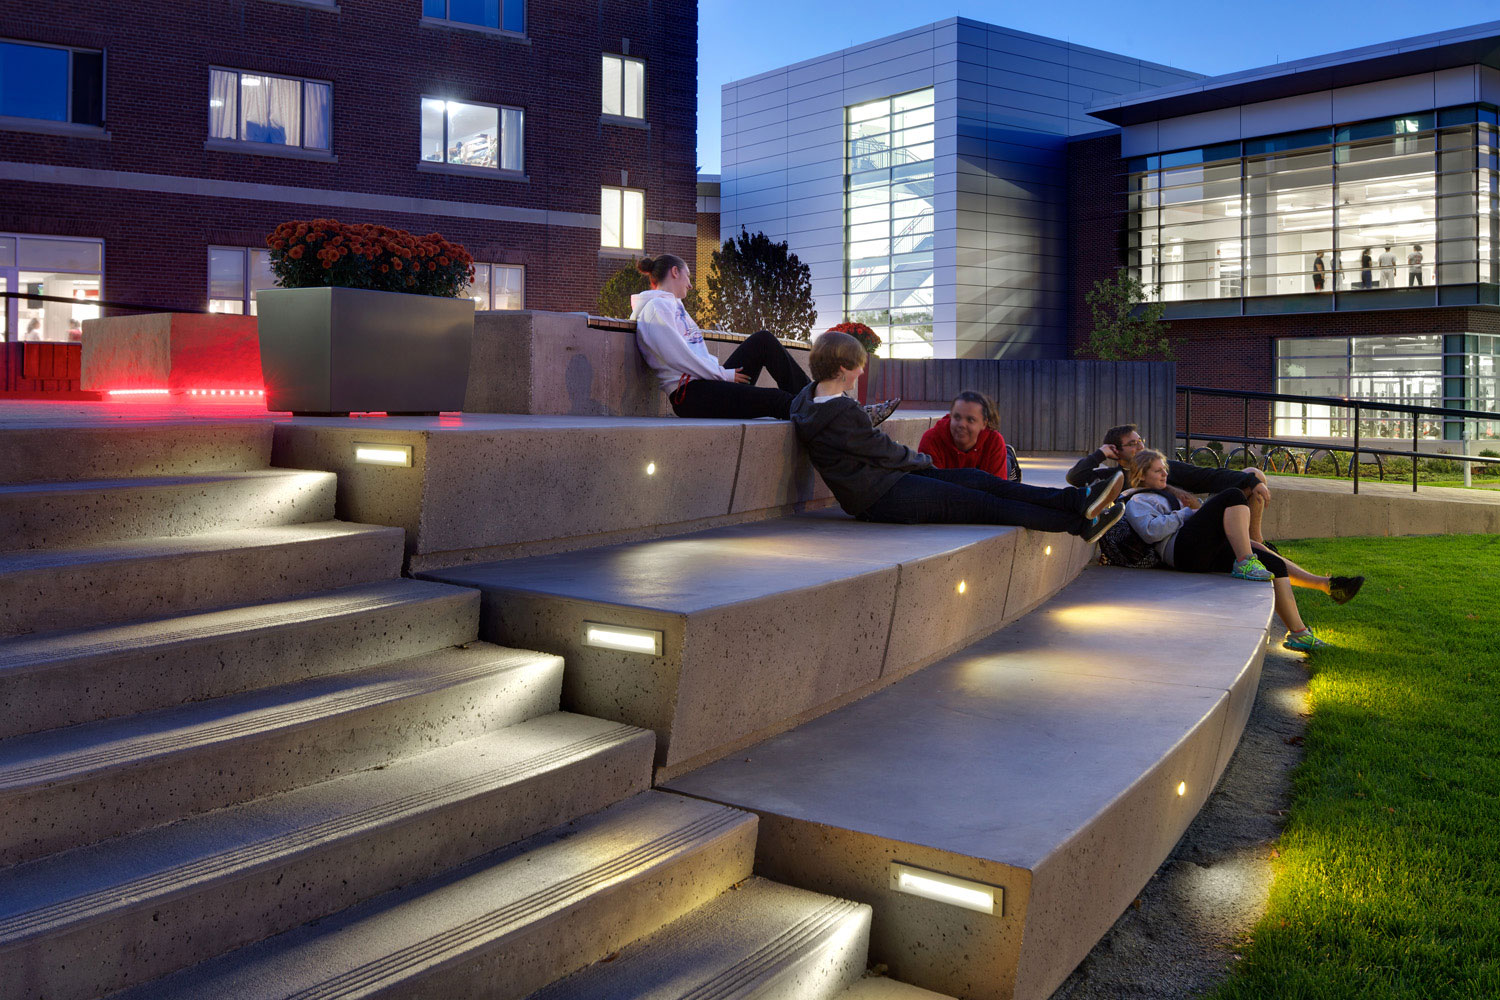 Amphitheater seating at the Wedge serves as a popular gathering space overlooking the active campus green. (Photo by Ed Wonsek)